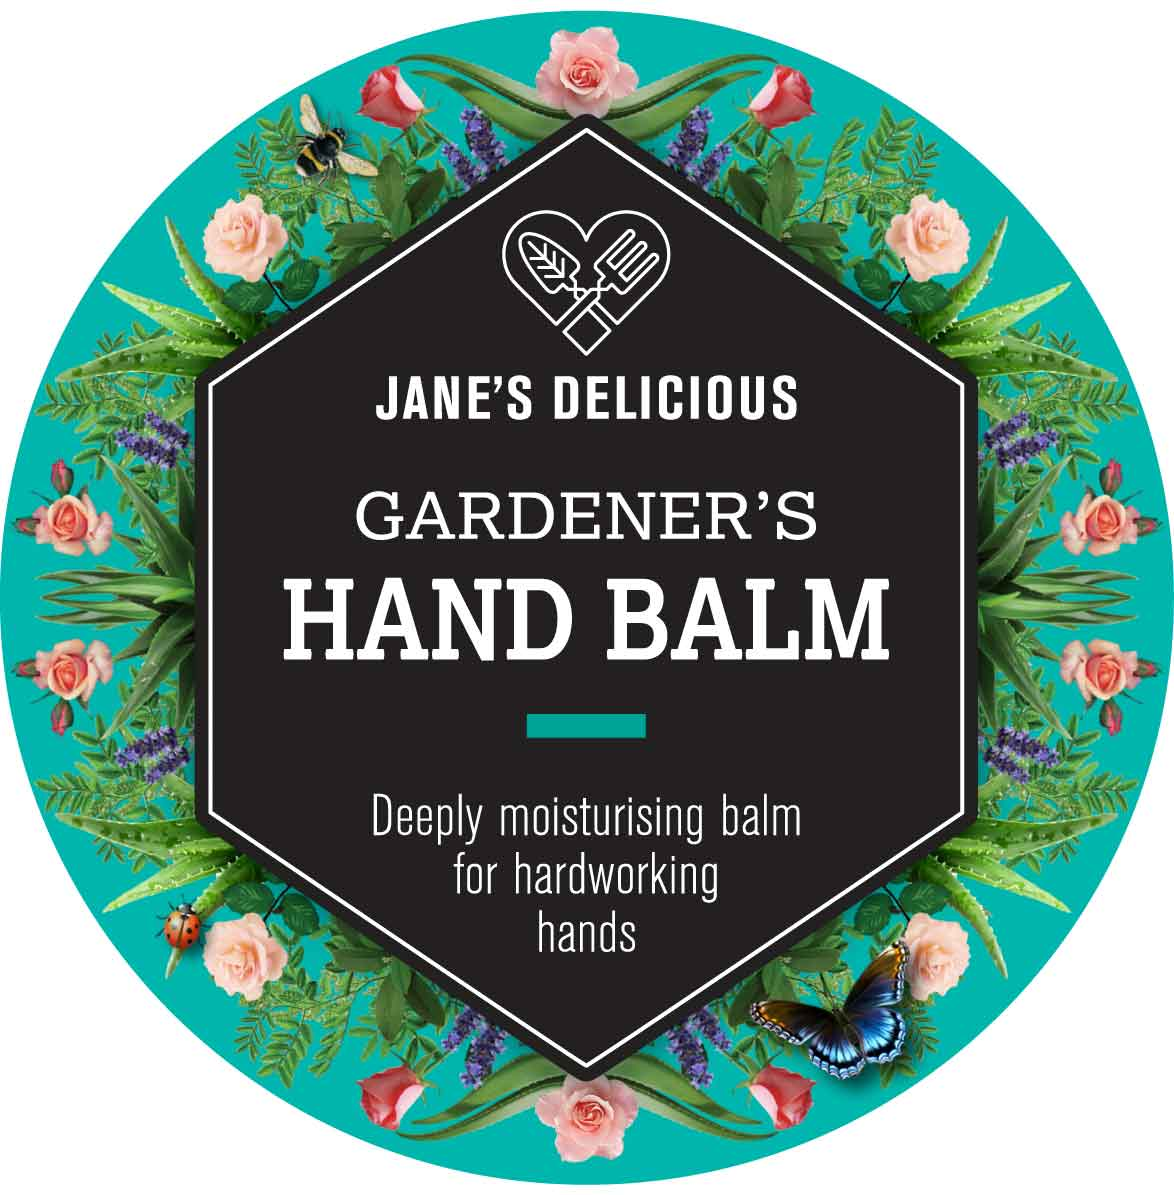 A deeply moisturising balm for hard working hands.